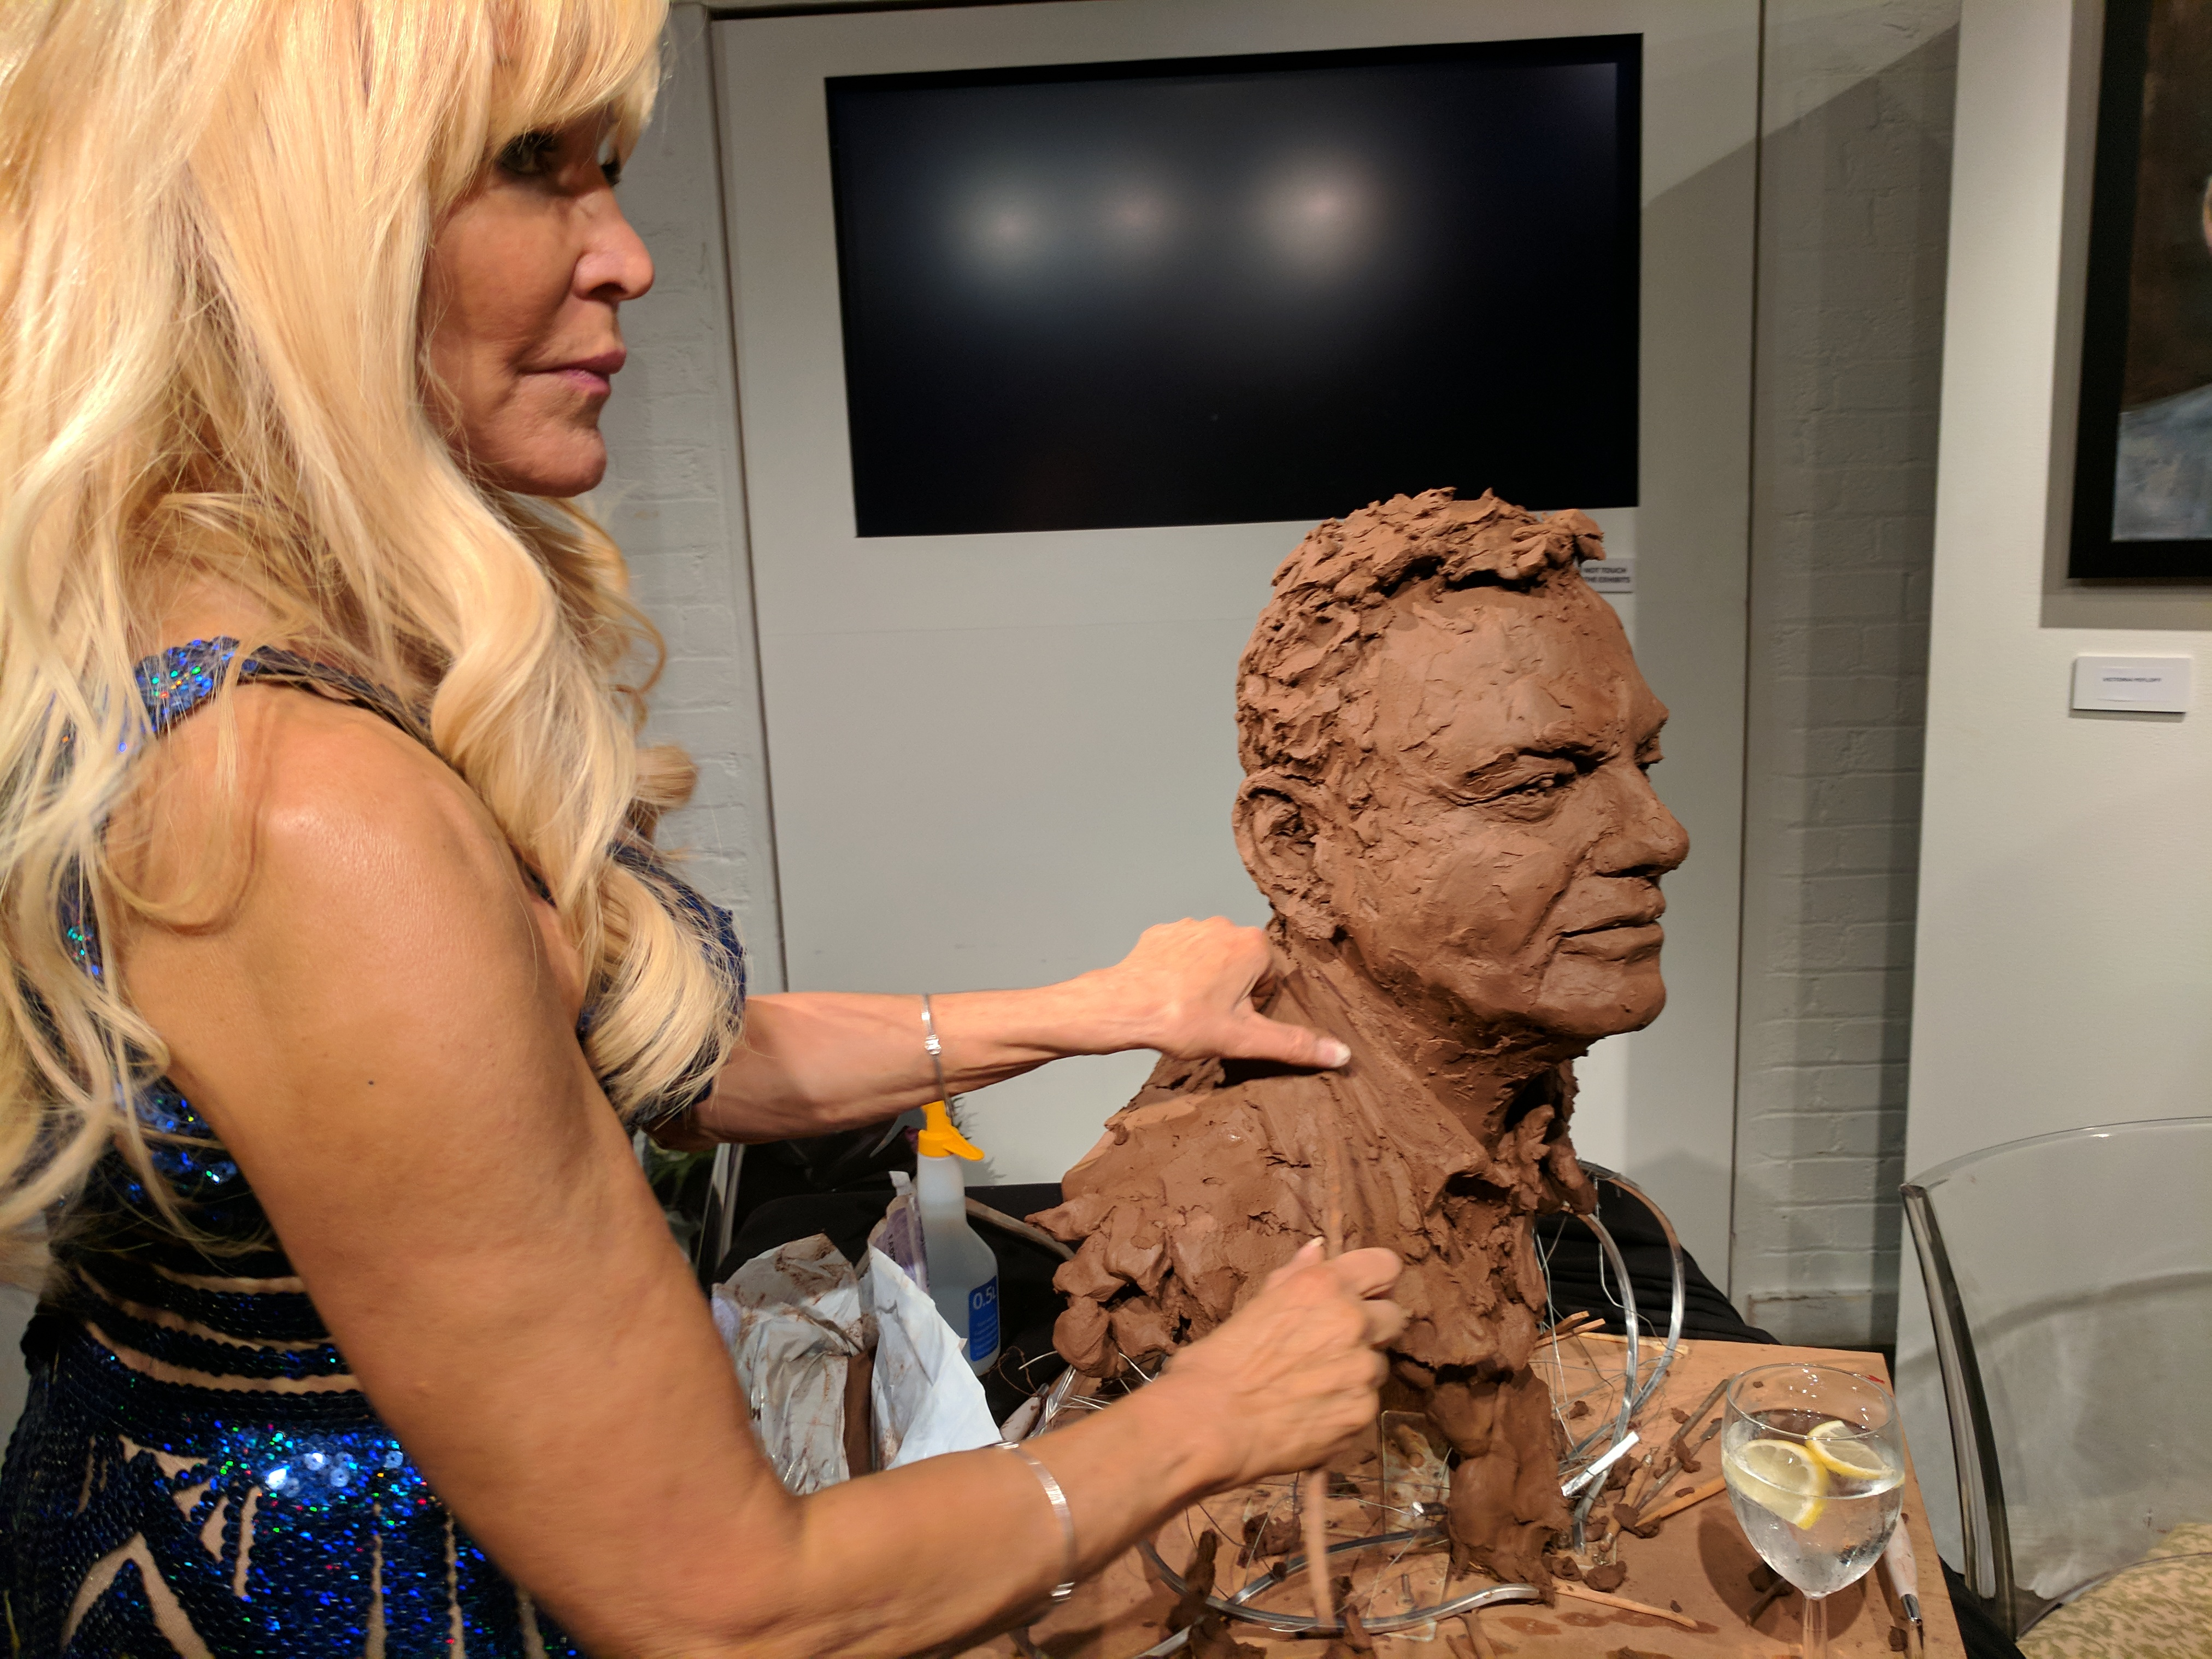 Royal Sculptress Frances Segelman sculpts Eamonn Holmes in aid of The Gesher School at The London Film Museum